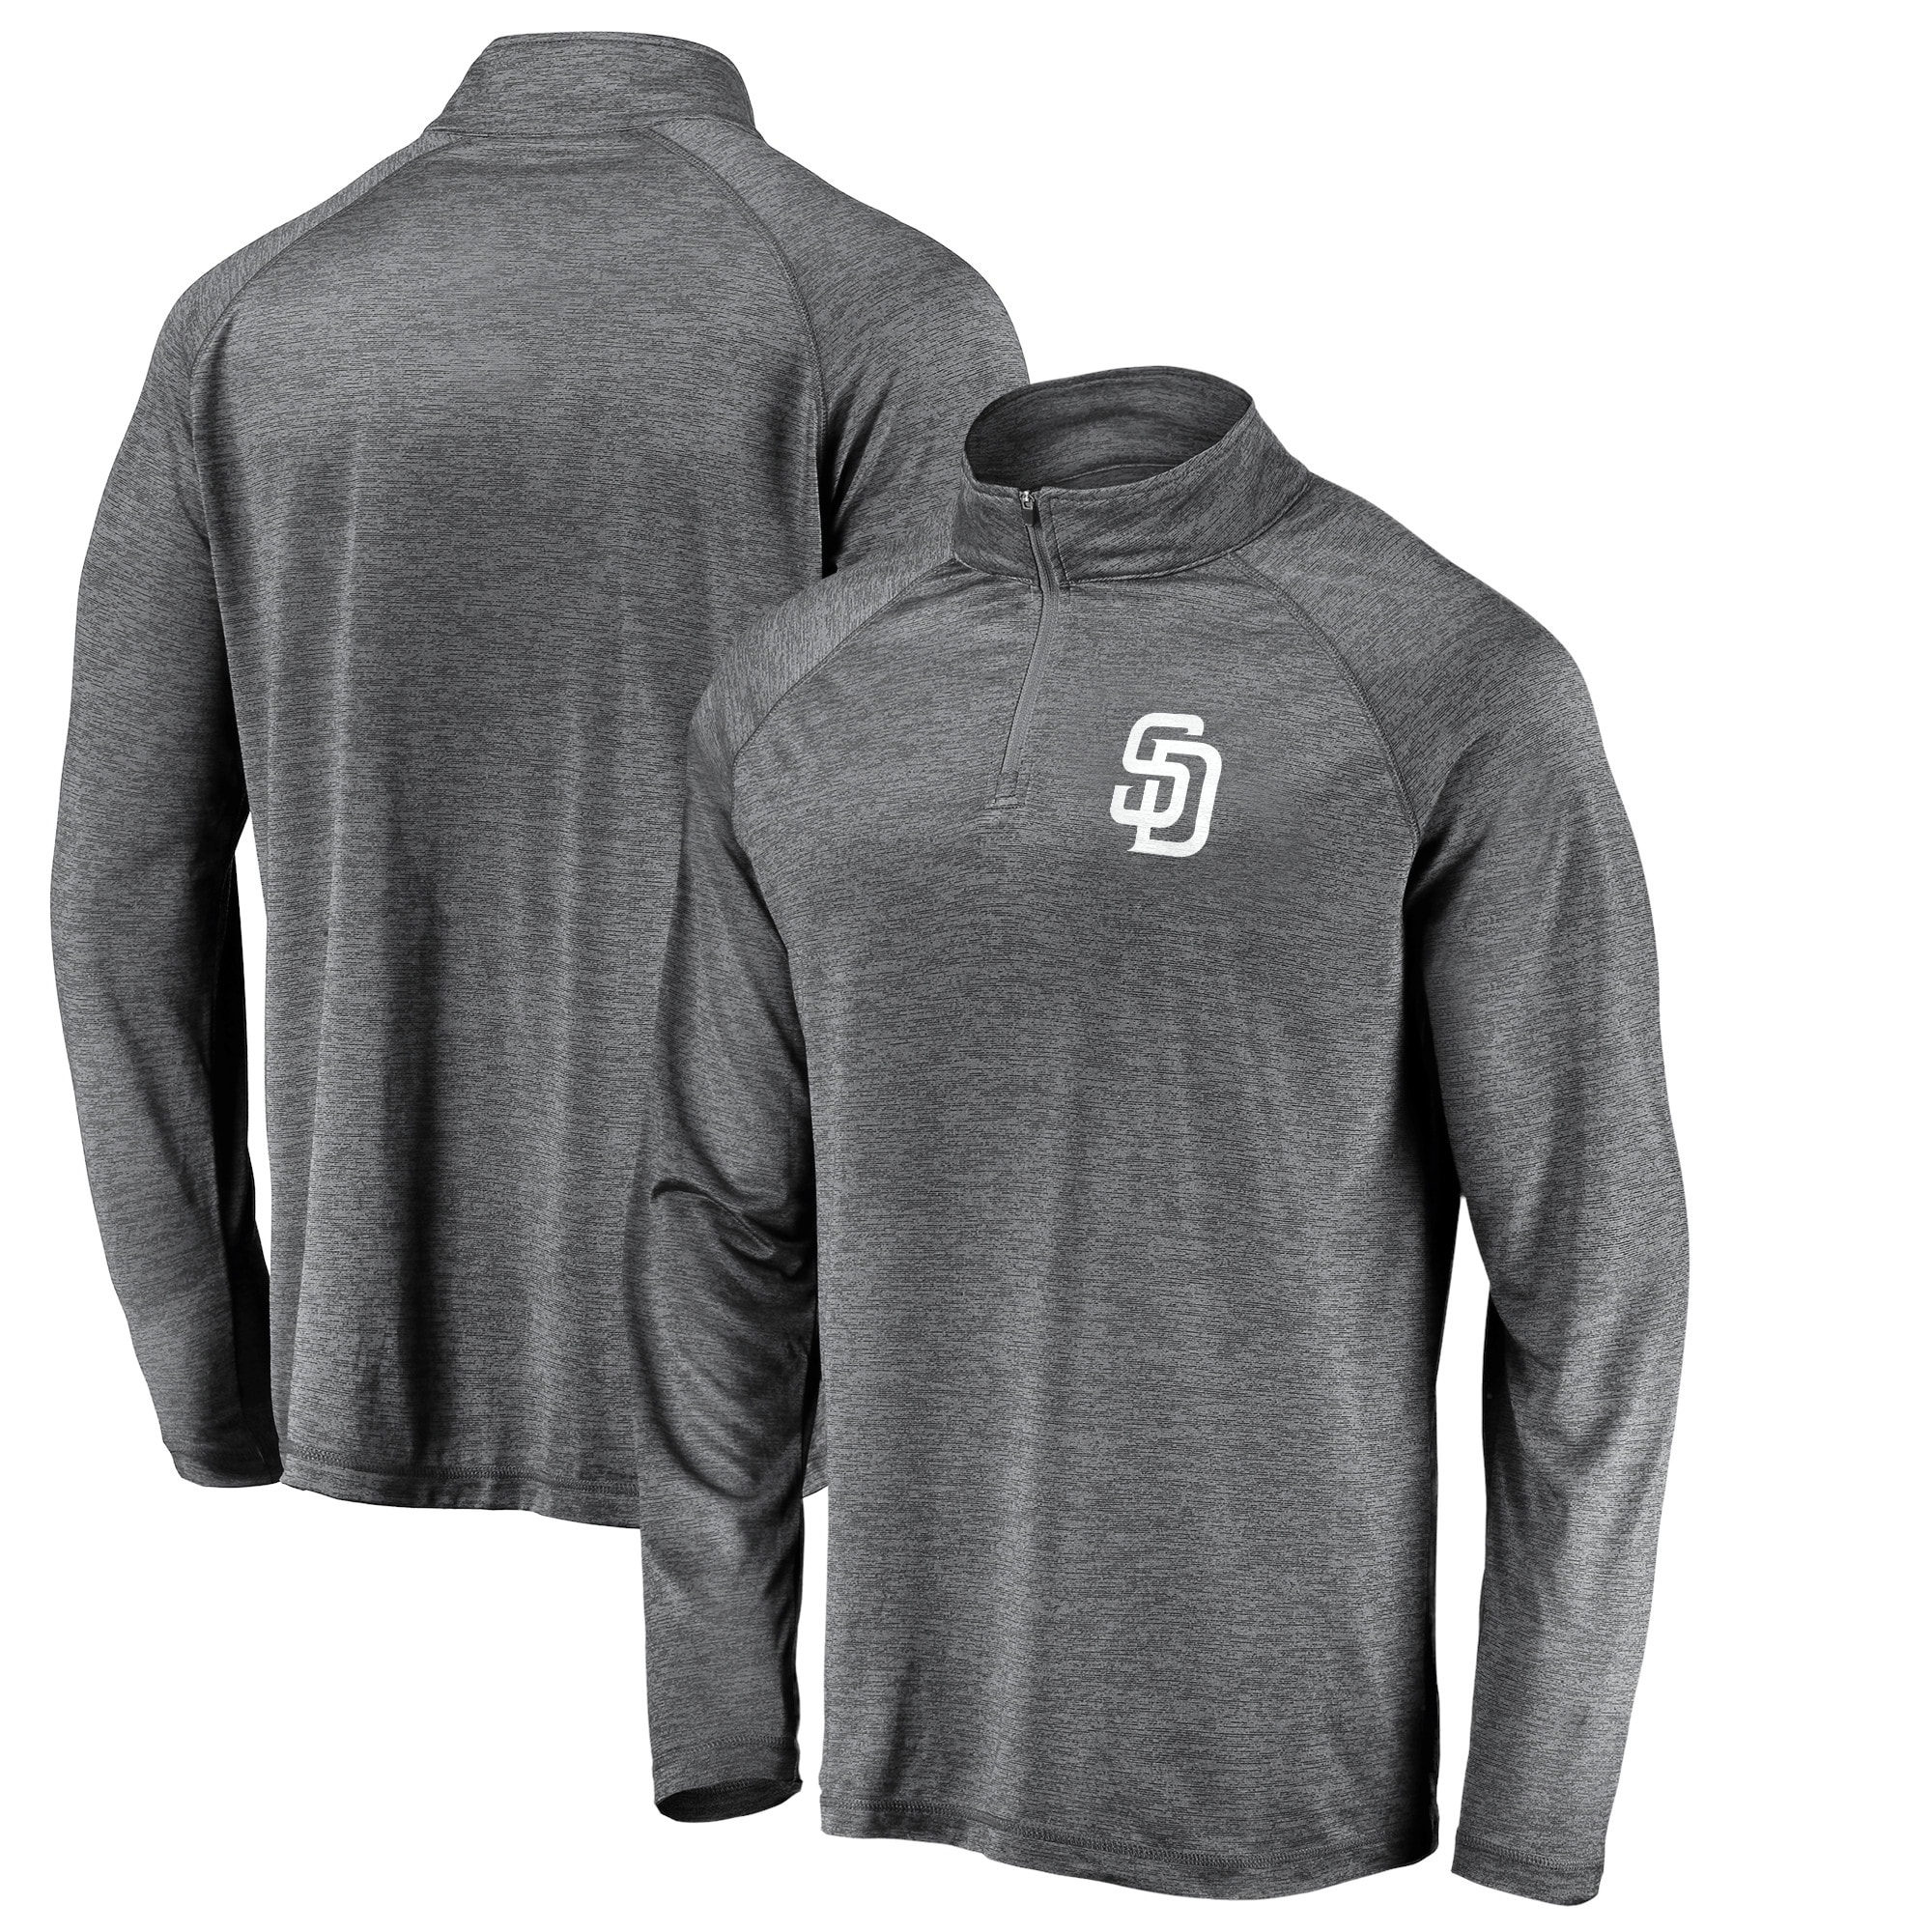 San Diego Padres Fanatics Branded Iconic Striated Primary Logo Raglan Quarter-Zip Pullover Jacket - Gray